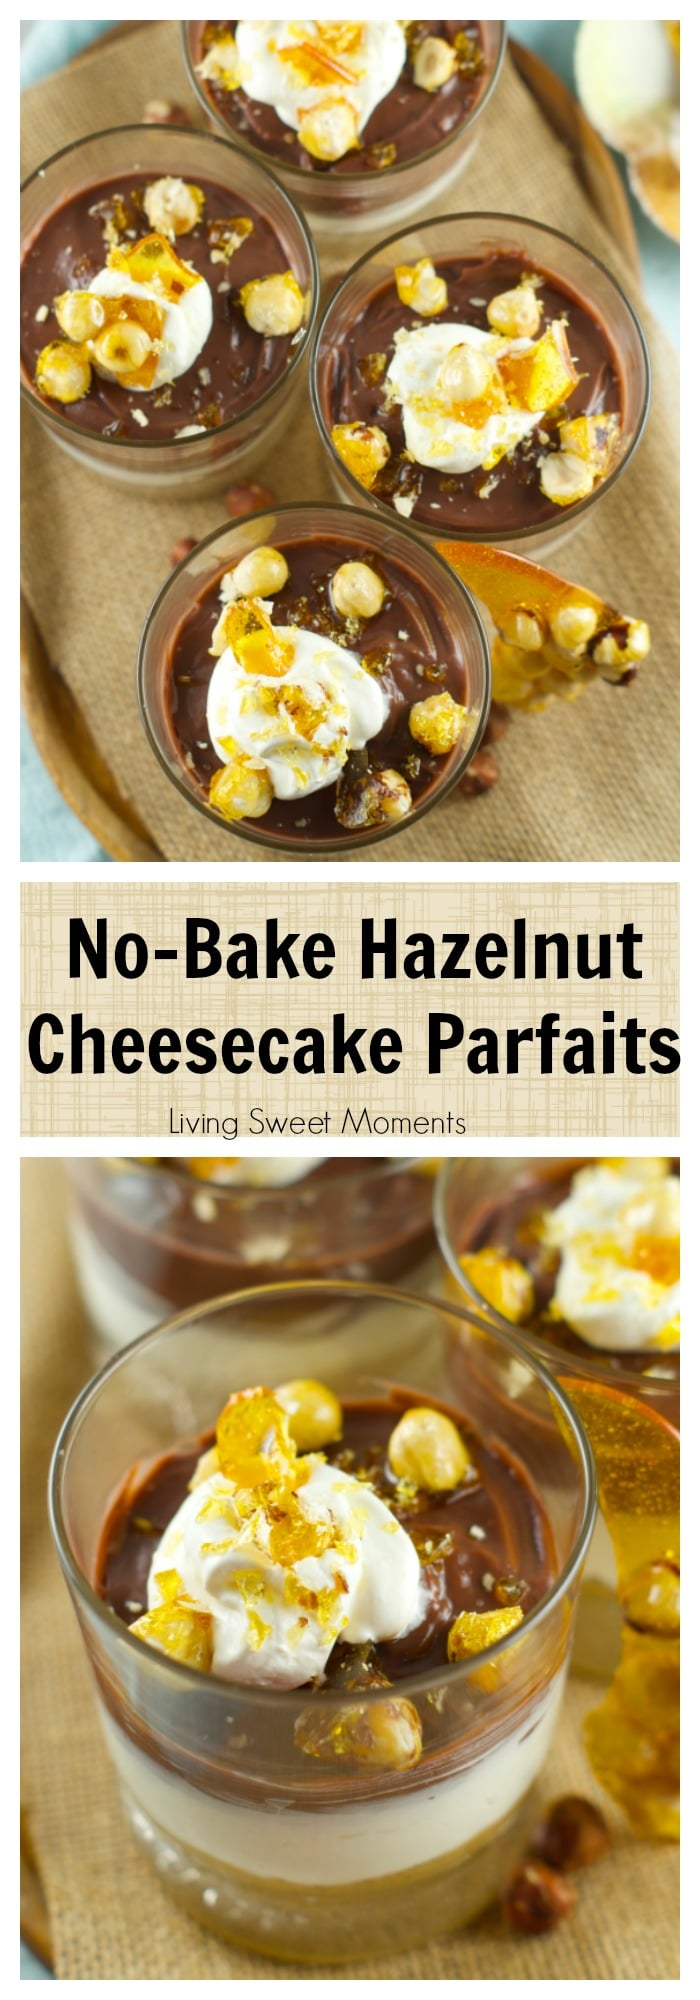 No Bake Hazelnut Cheesecake Parfaits With Candied Hazelnuts – delicious cheesecake parfaits with chocolate pudding. The perfect no bake summer dessert.